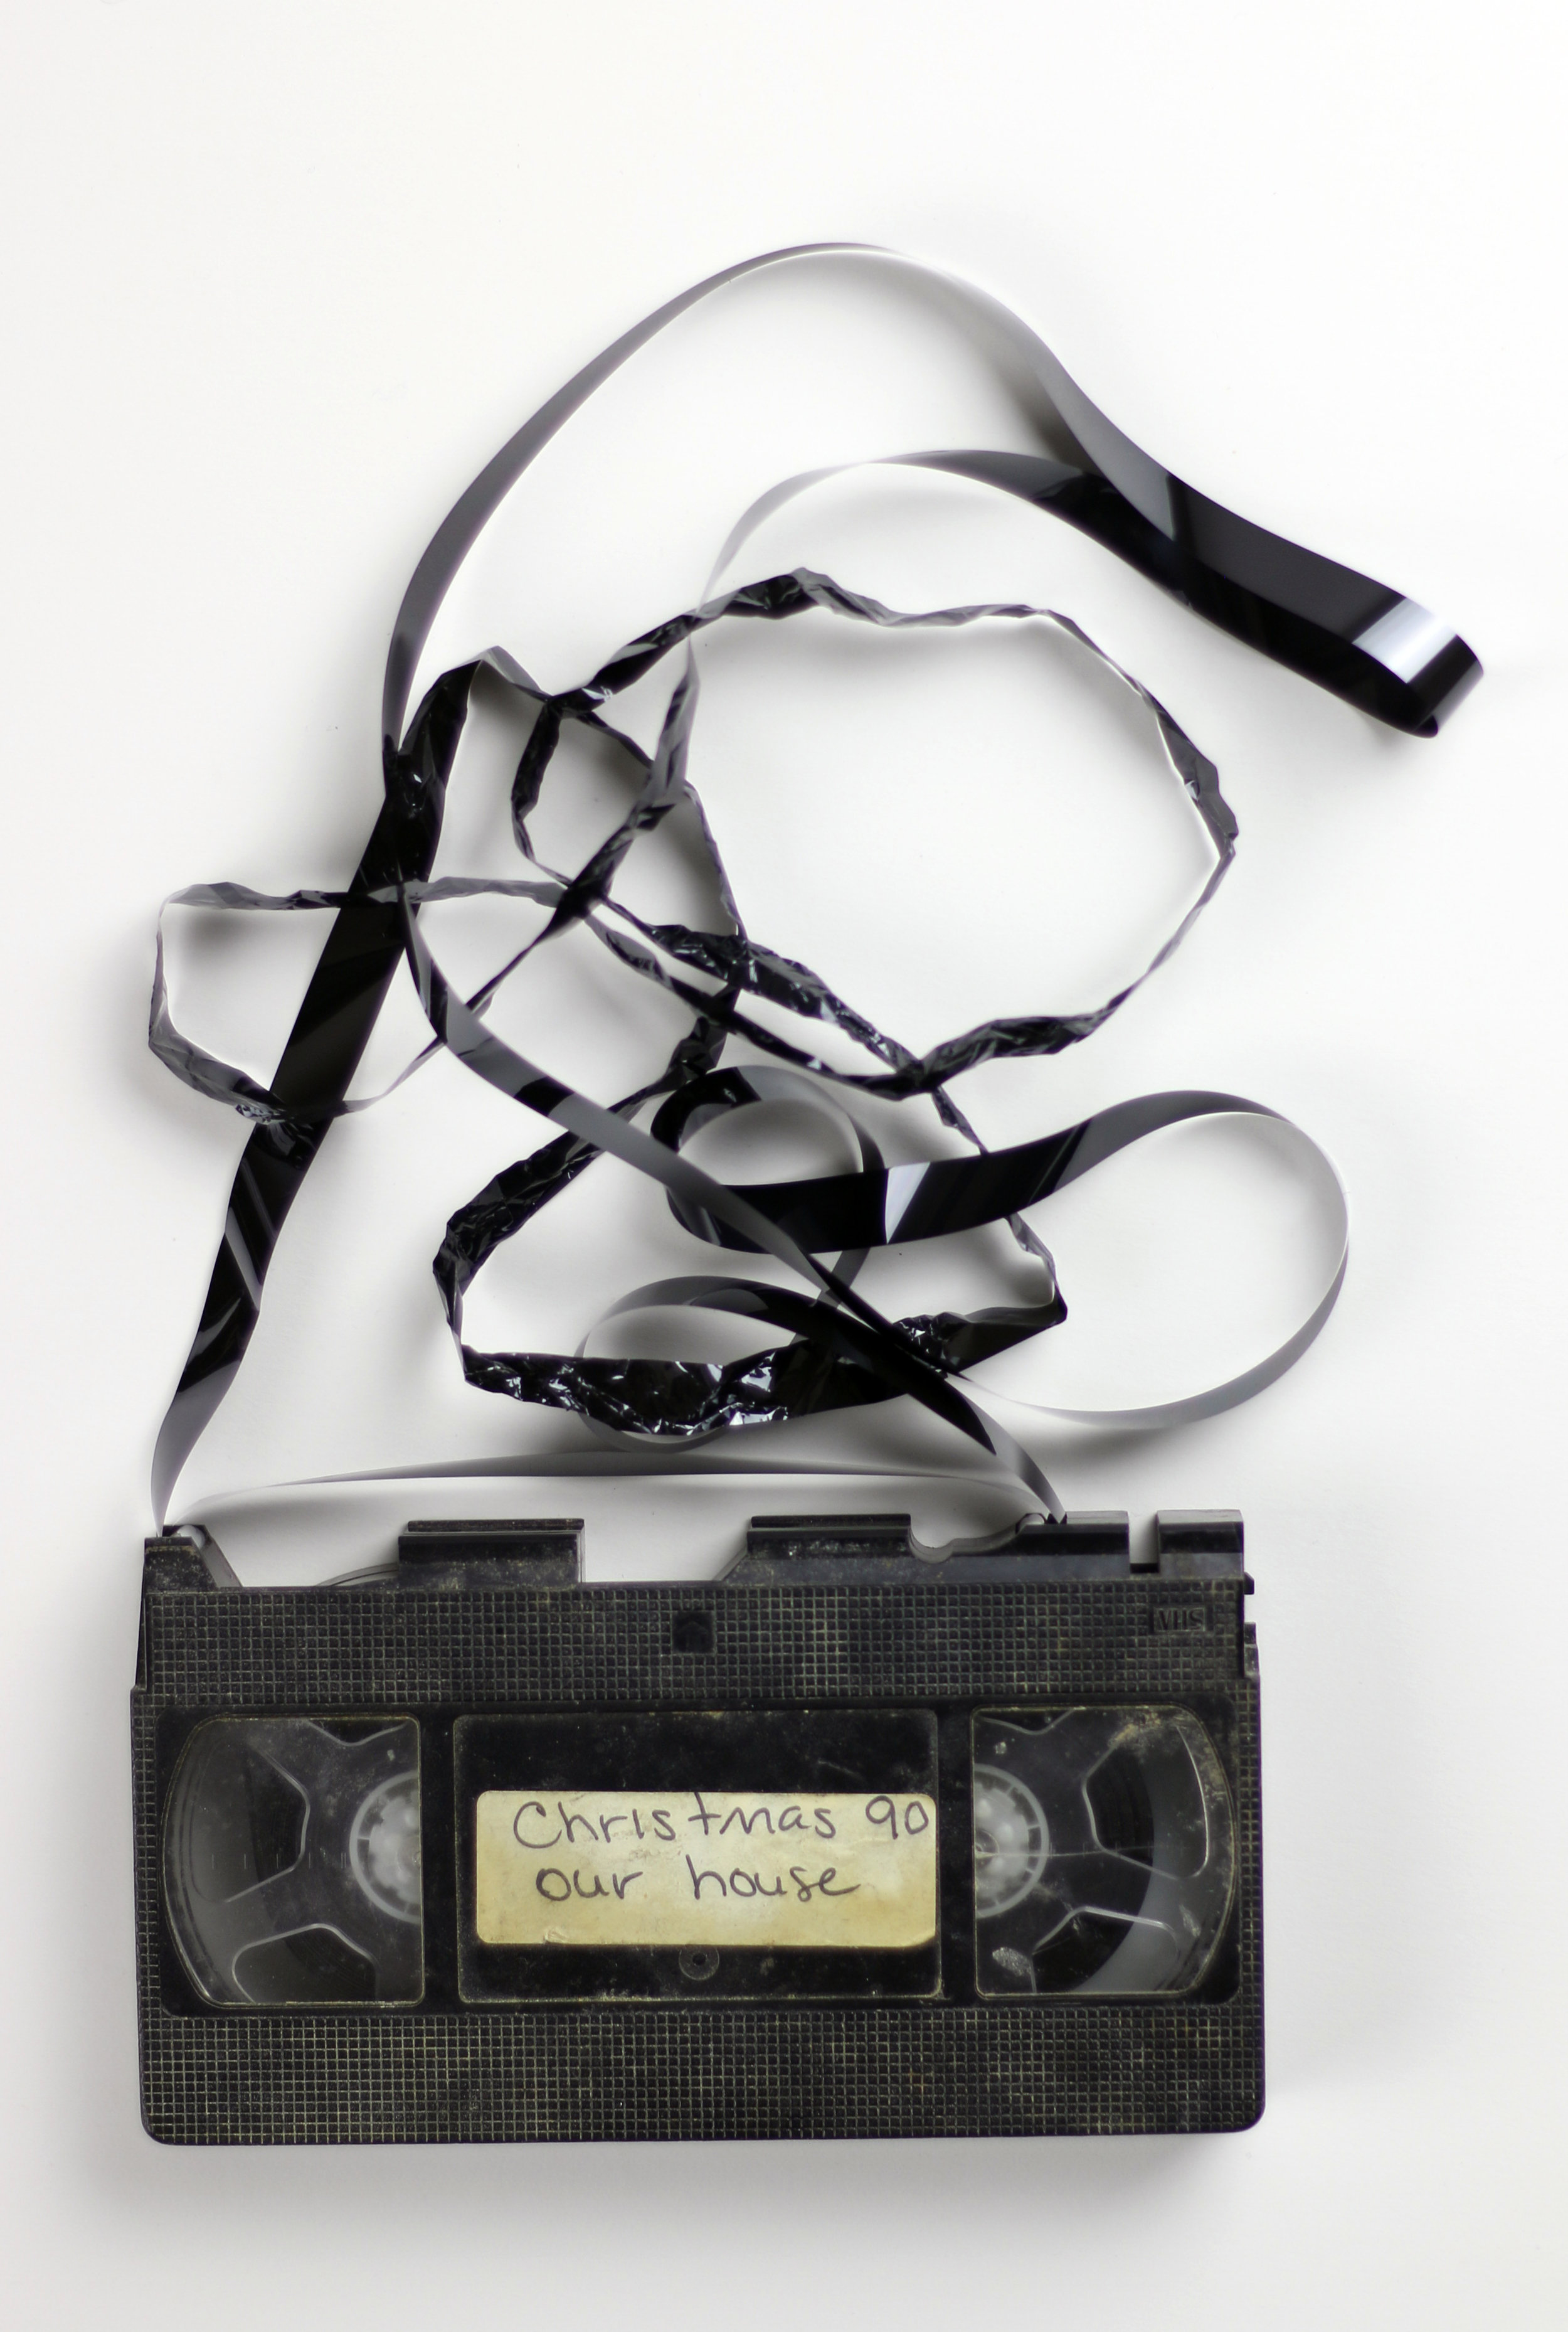 We Repair Tapes - Worried you wont be able to transfer your tape because its damaged and now that memory is lost forever? Don't be! We can fix your tape with minimal loss of data for just a minimal fee.